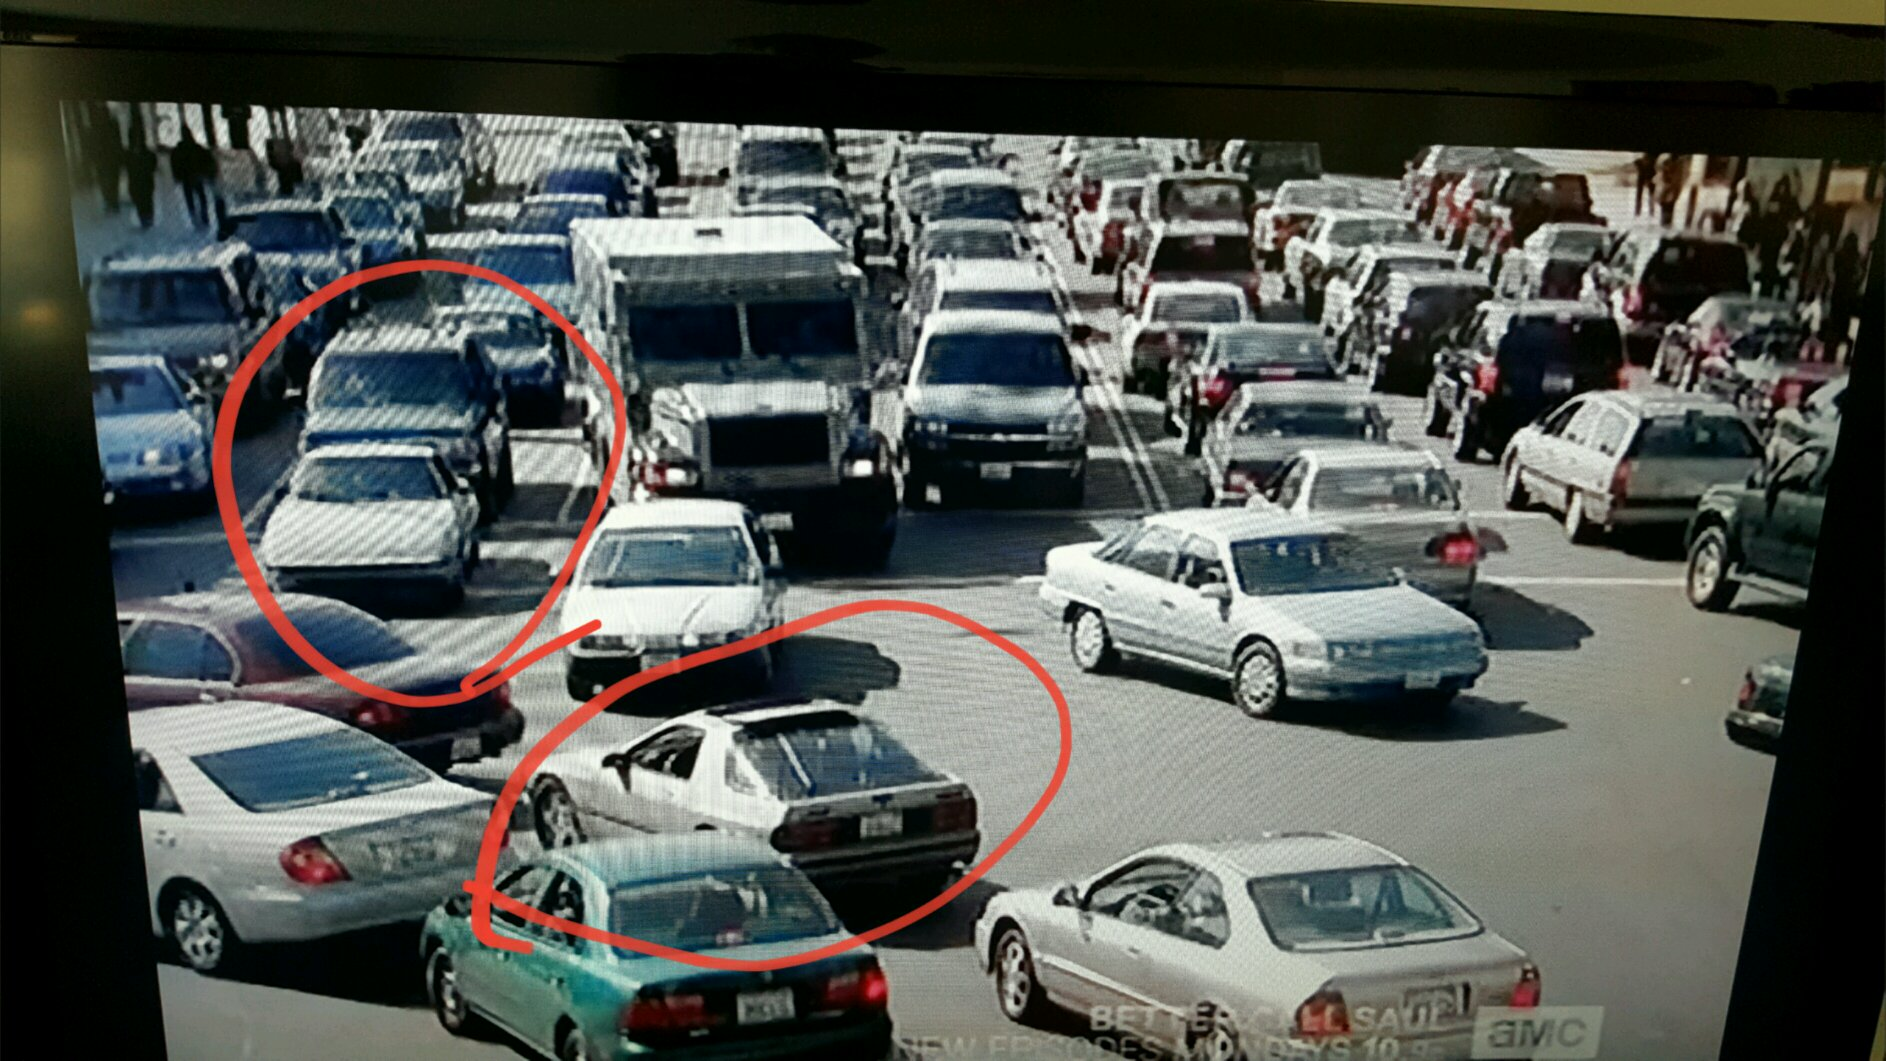 So Watching The Italian Job And Spotted A 1st And 2nd Gen Rx7